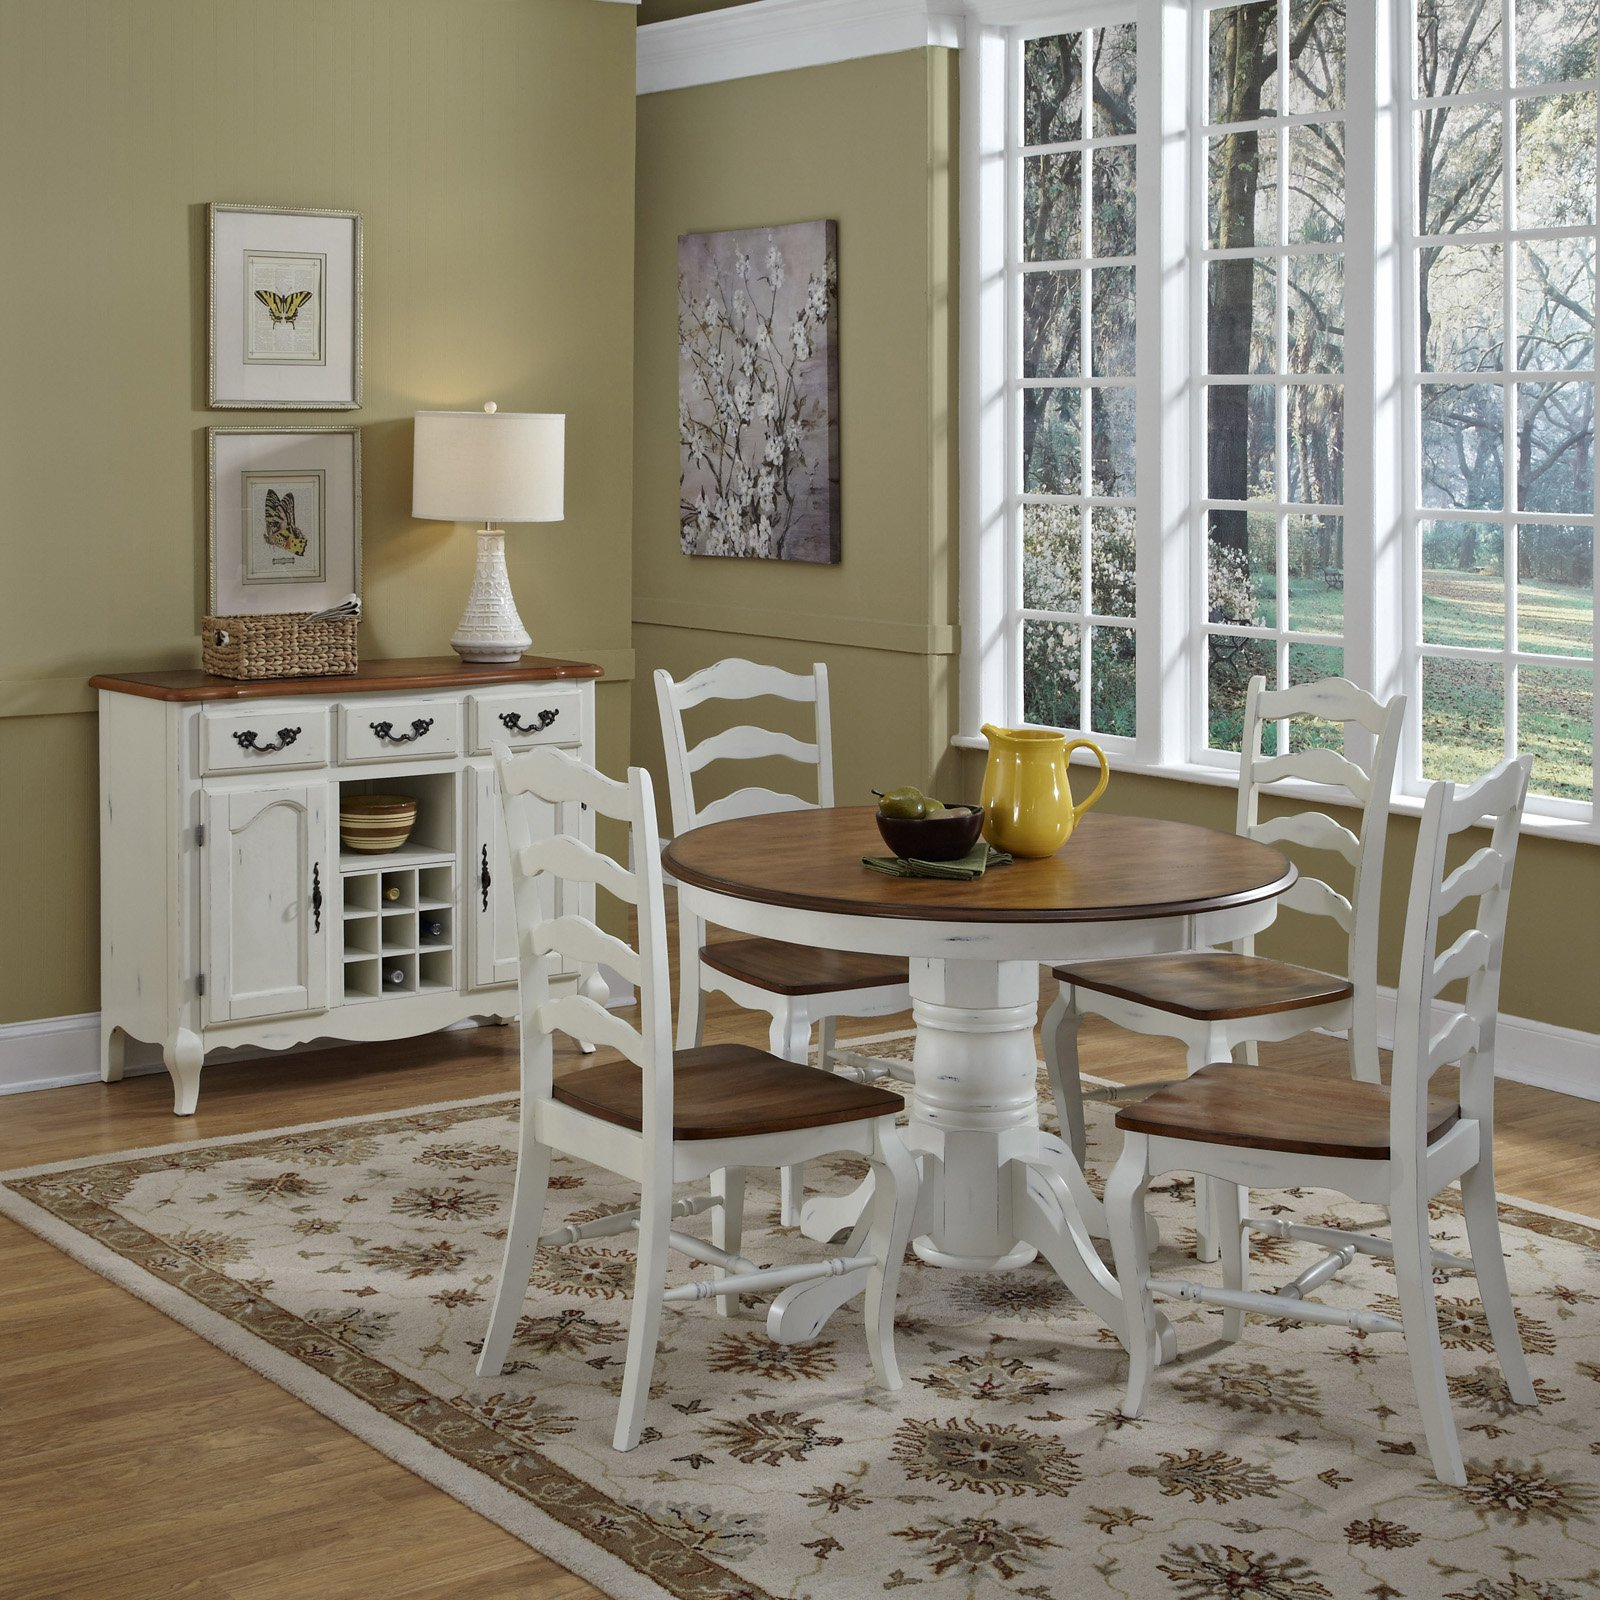 Home Styles French Countryside Oak Pedestal Table Off White - Walmart.com & Home Styles French Countryside Oak Pedestal Table Off White ...